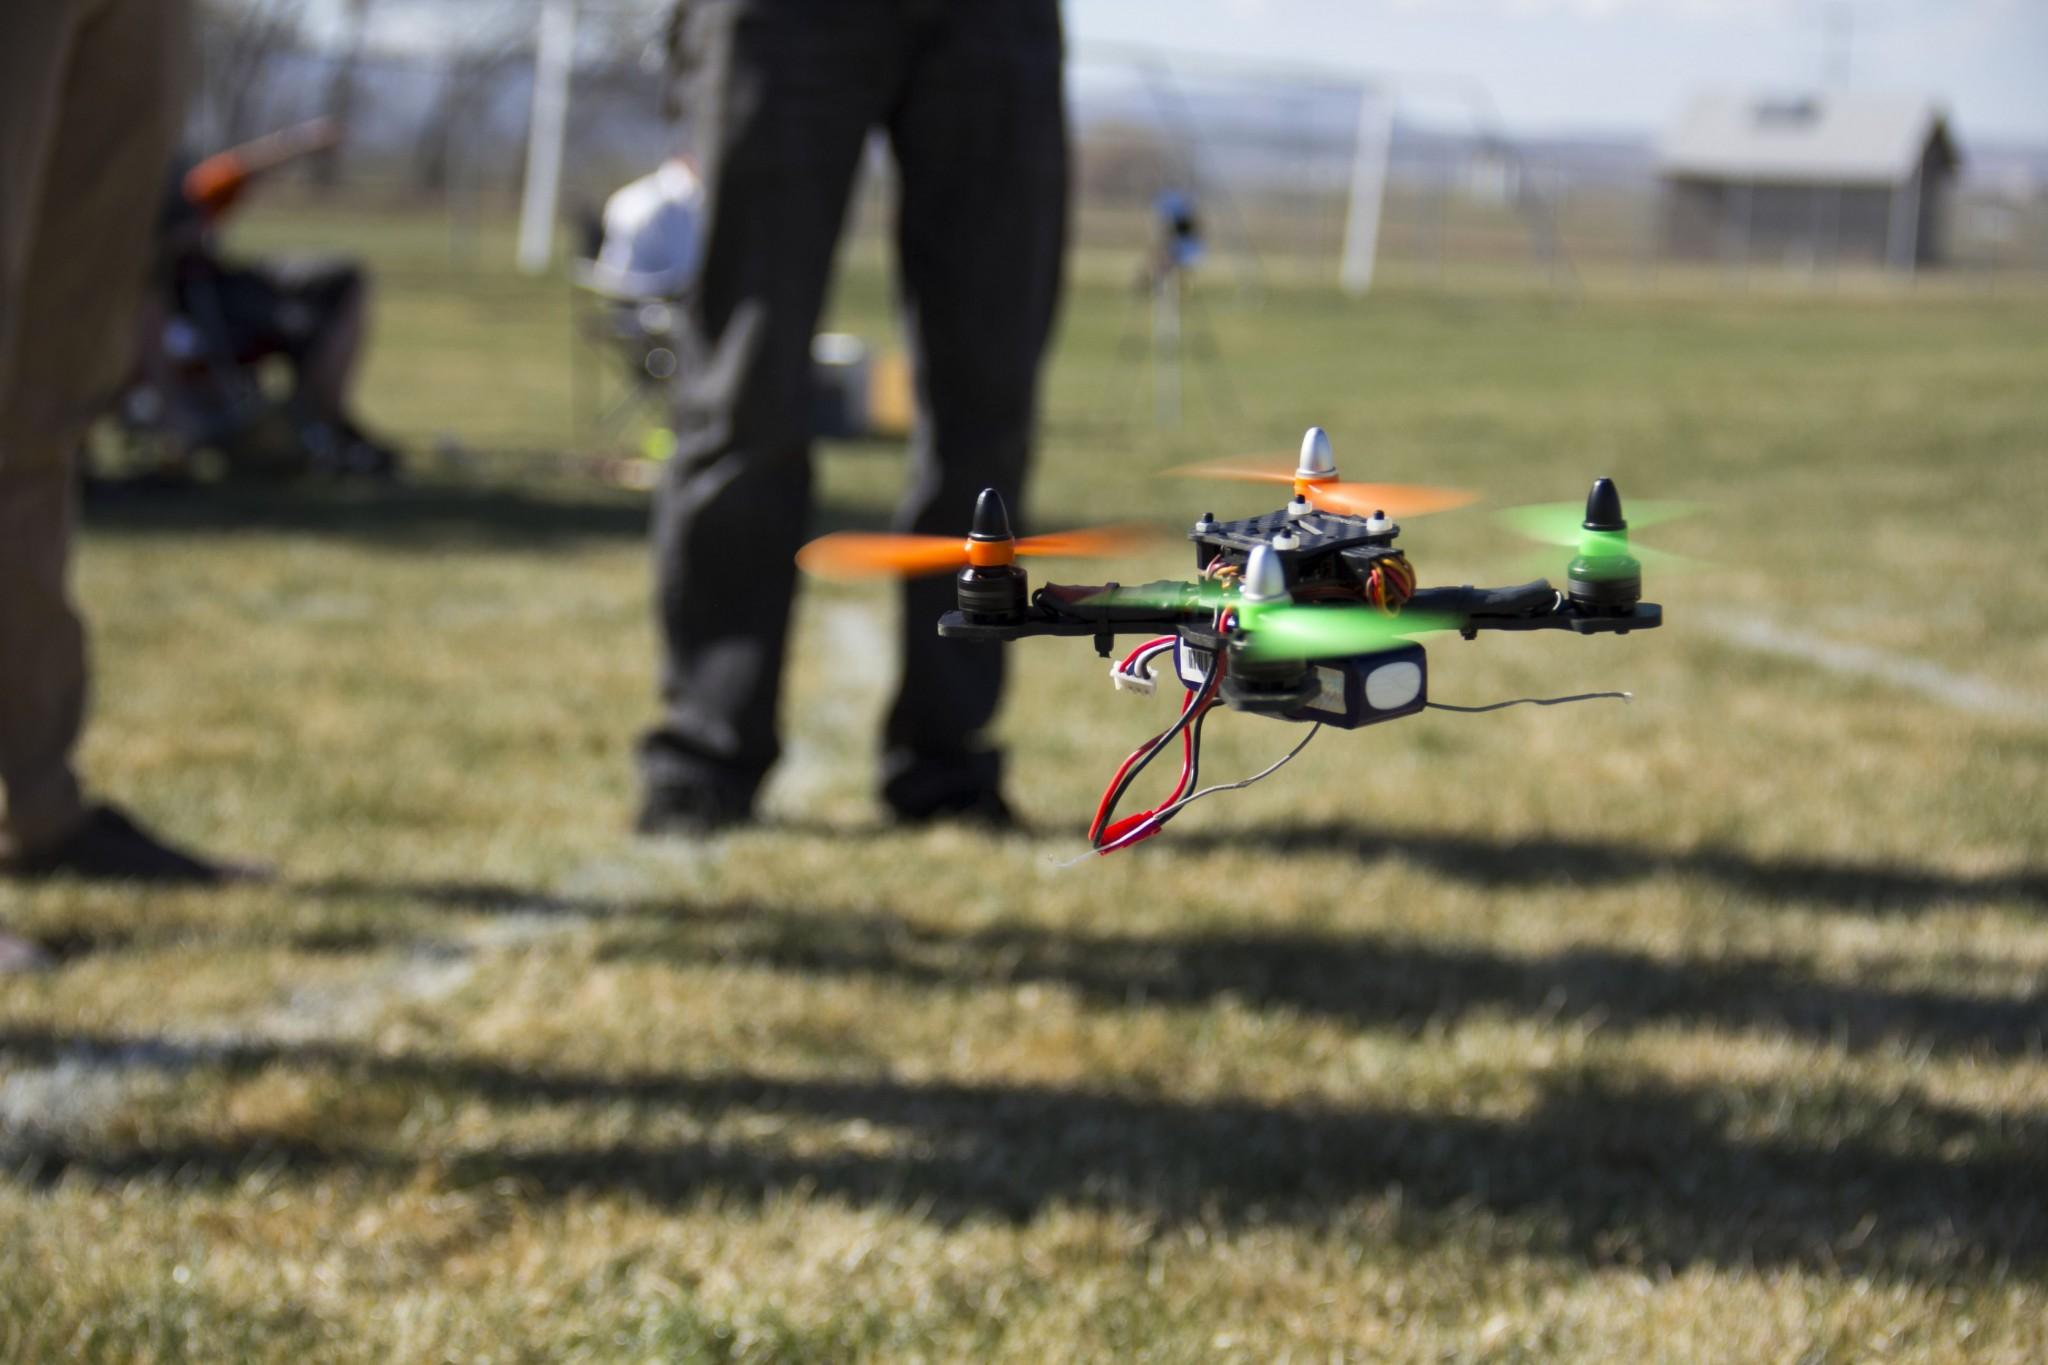 Fort Collins Drone Enthusiasts Get Sky High